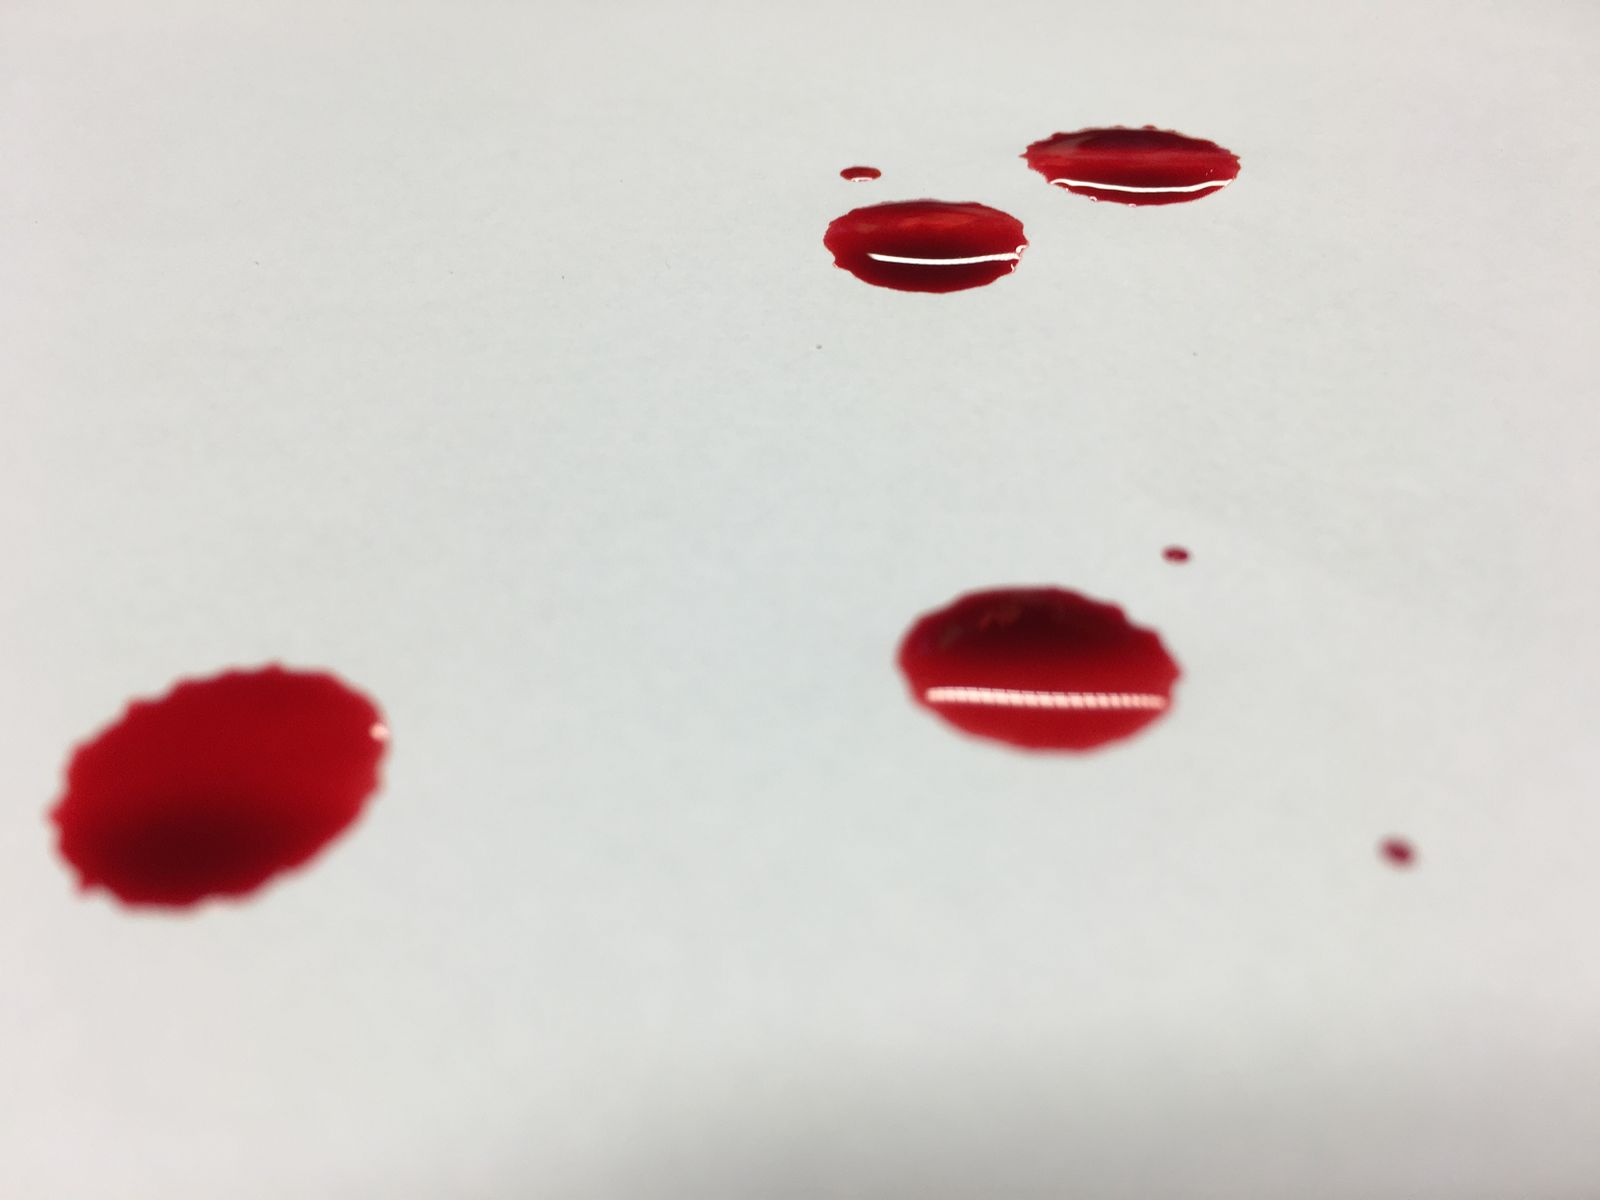 Blood Stains On White Background